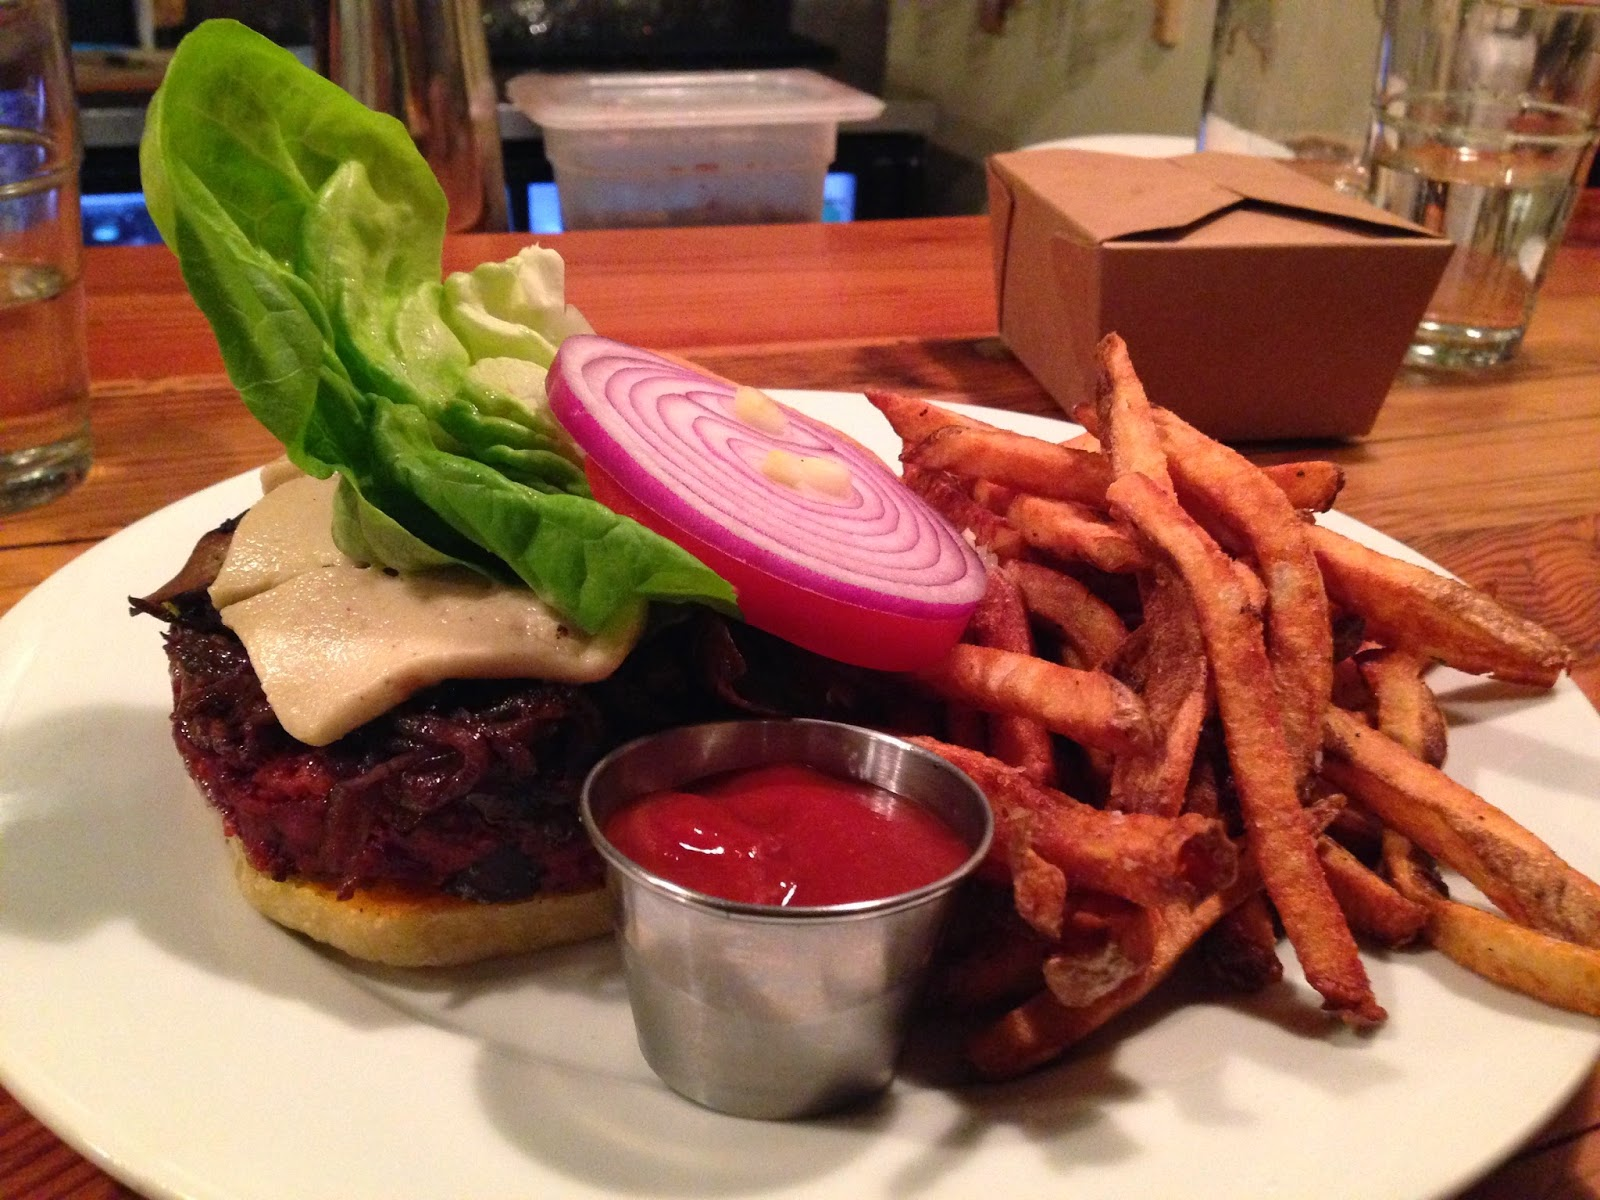 Beet Burger Royale from Portobello in Portland, OR | The Economical Eater